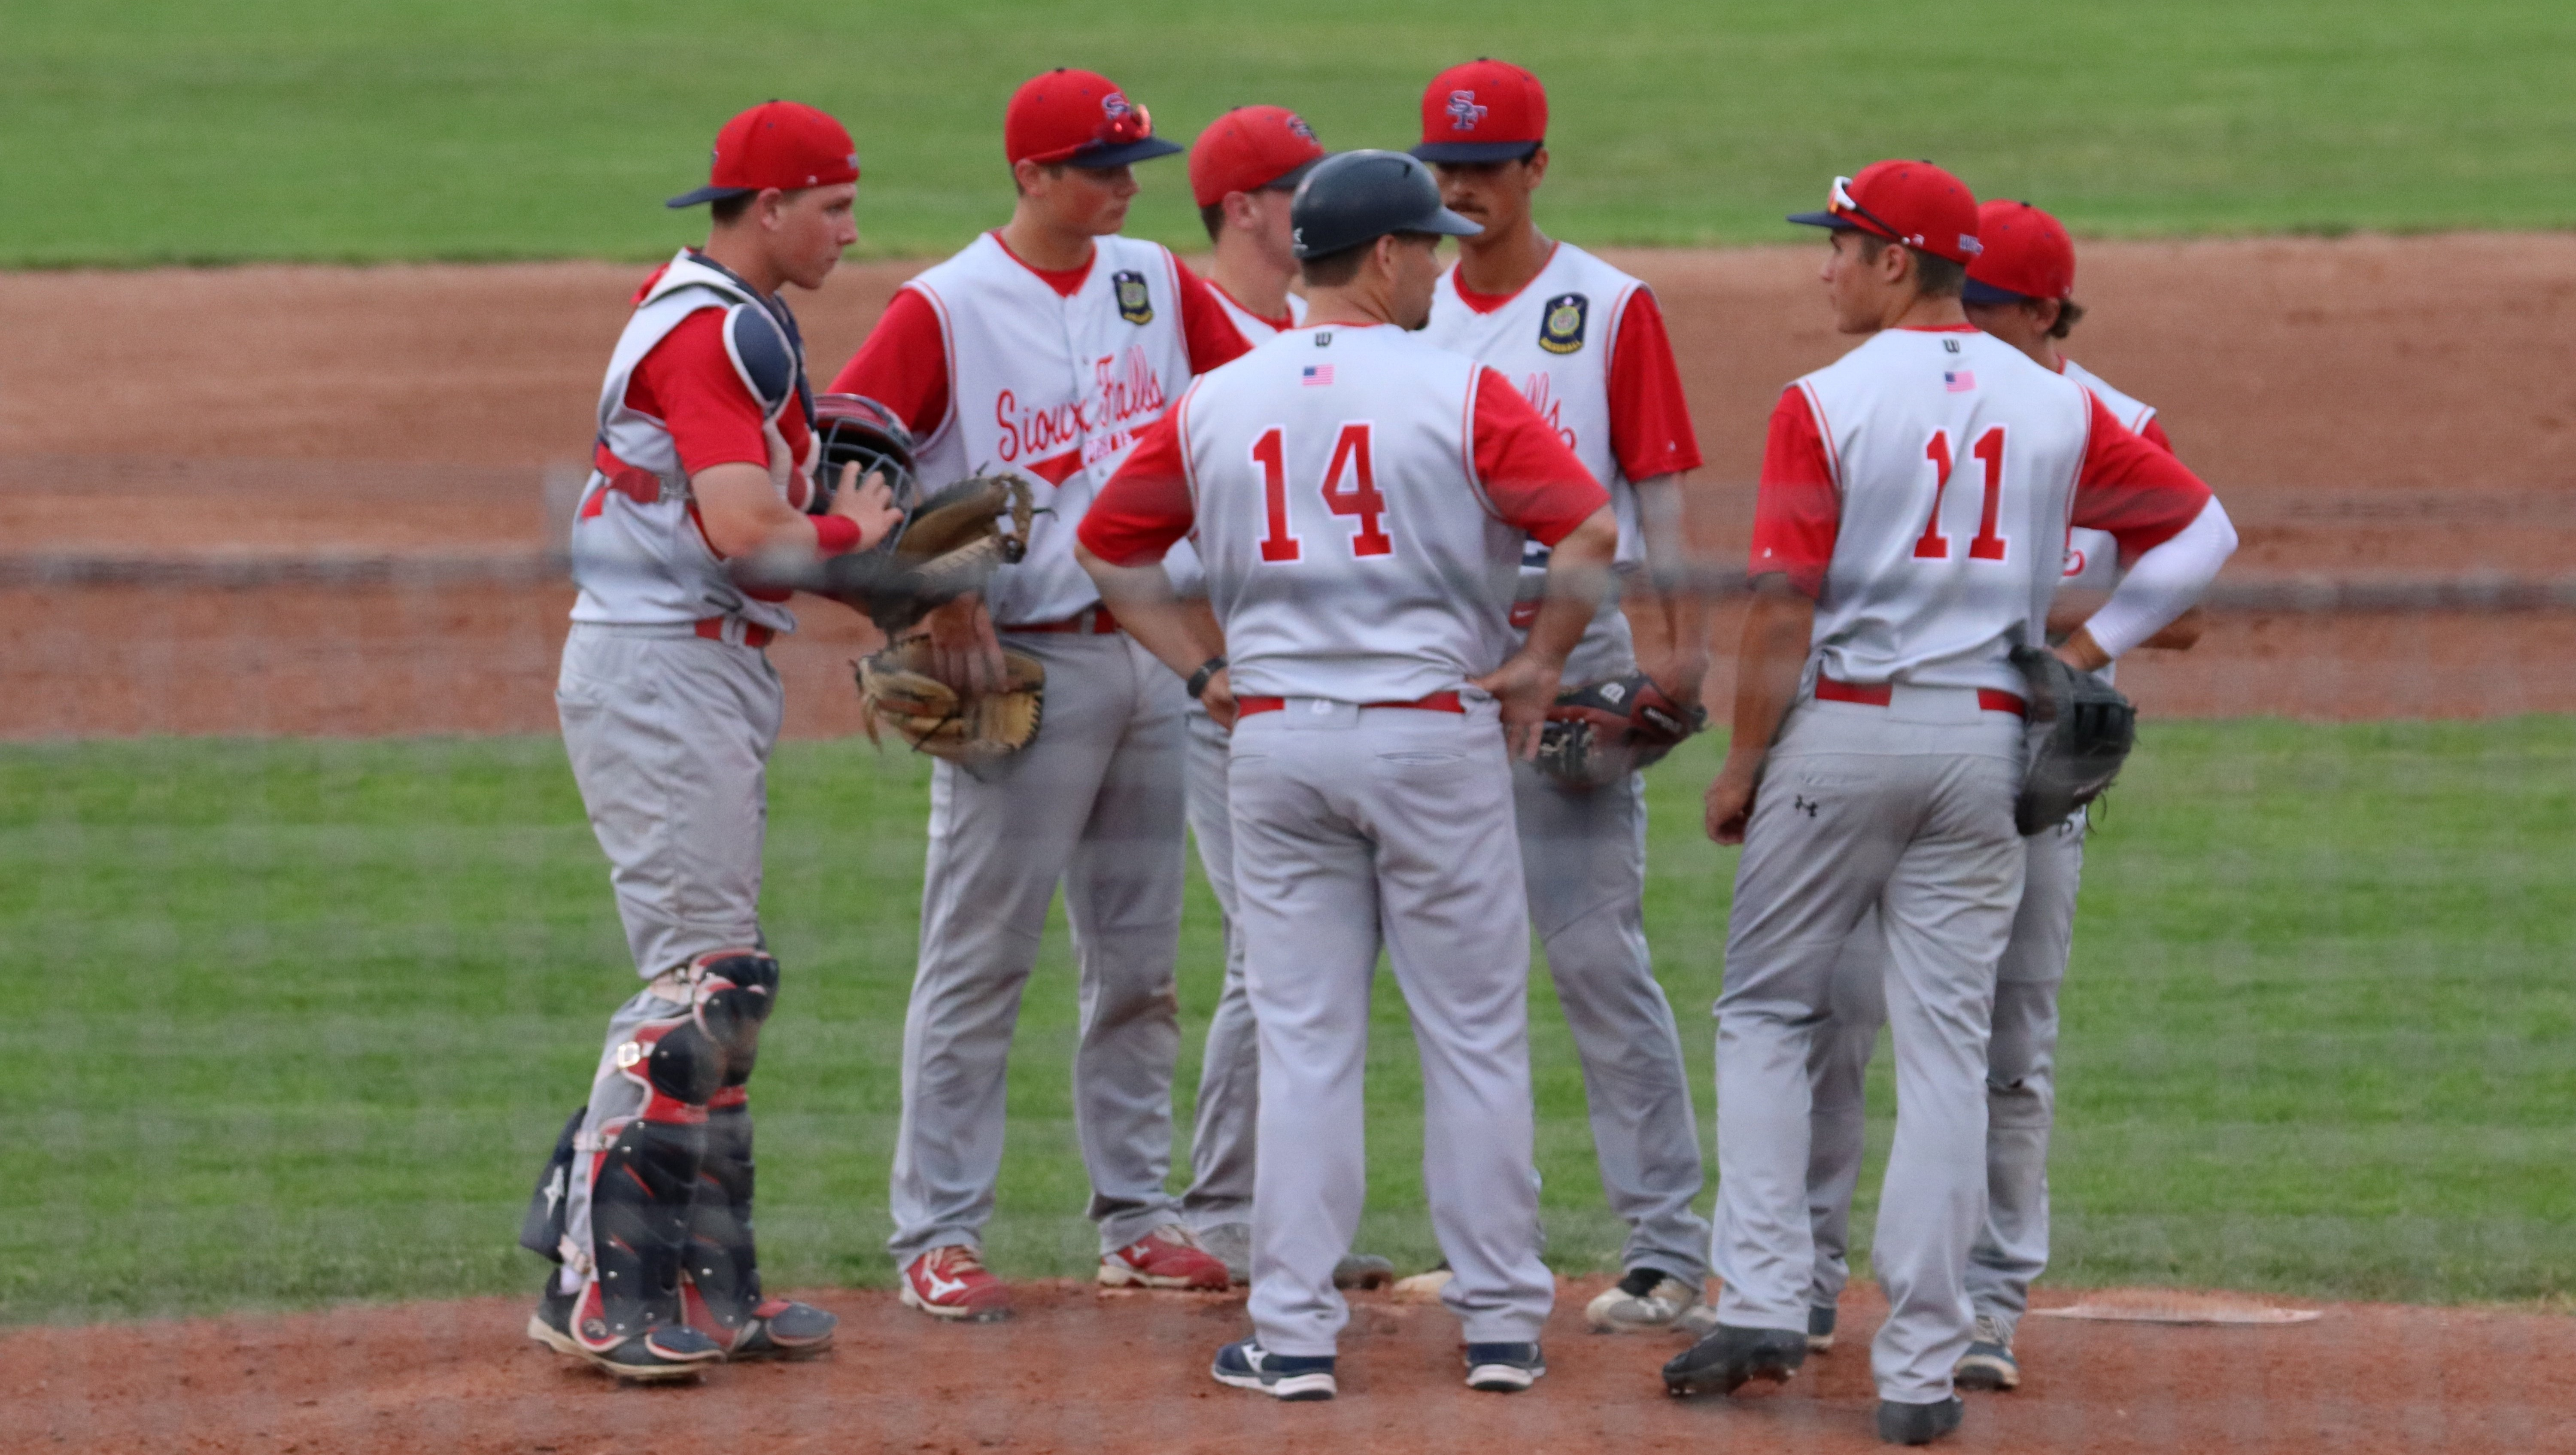 Sioux_Falls_Baseball_Team_huddled_around_the_pitching_mound